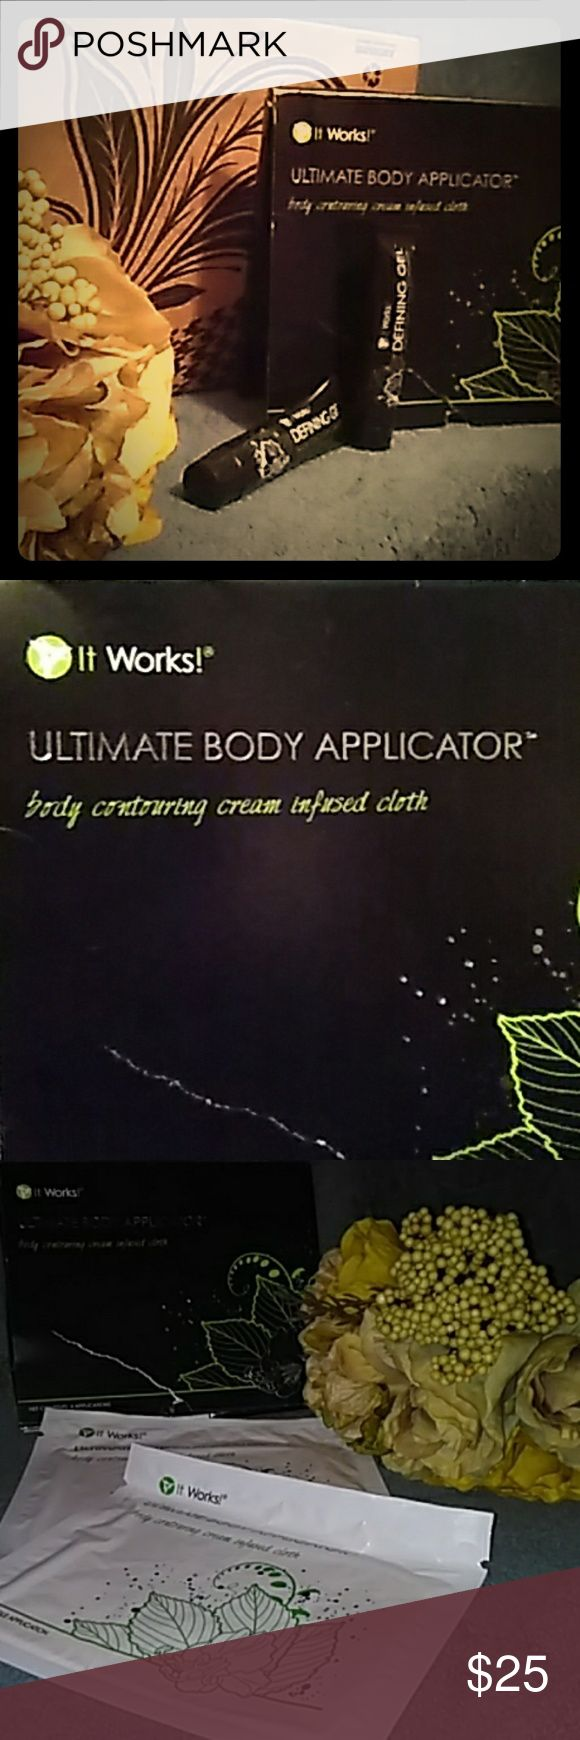 Ultimate Body Applicator ( itworks ) Tighten, tone and firm the appearance of your skin whatever you need it the most as little as 45 minutes with Progressive results over 72 hours Itworks Other